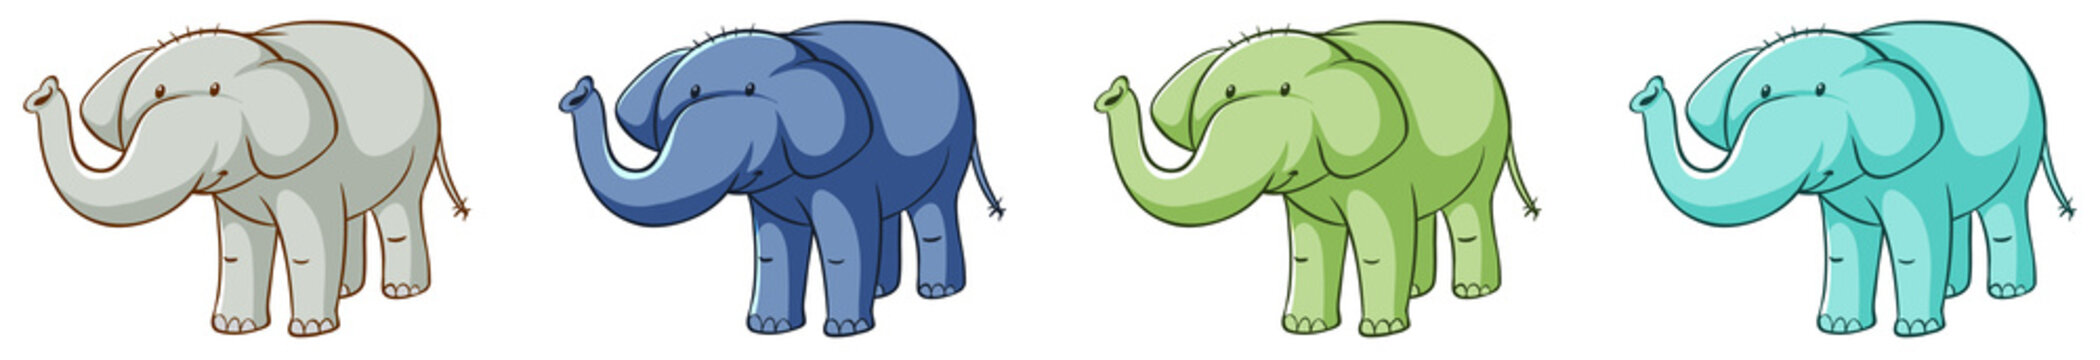 Cute elephants in four colors